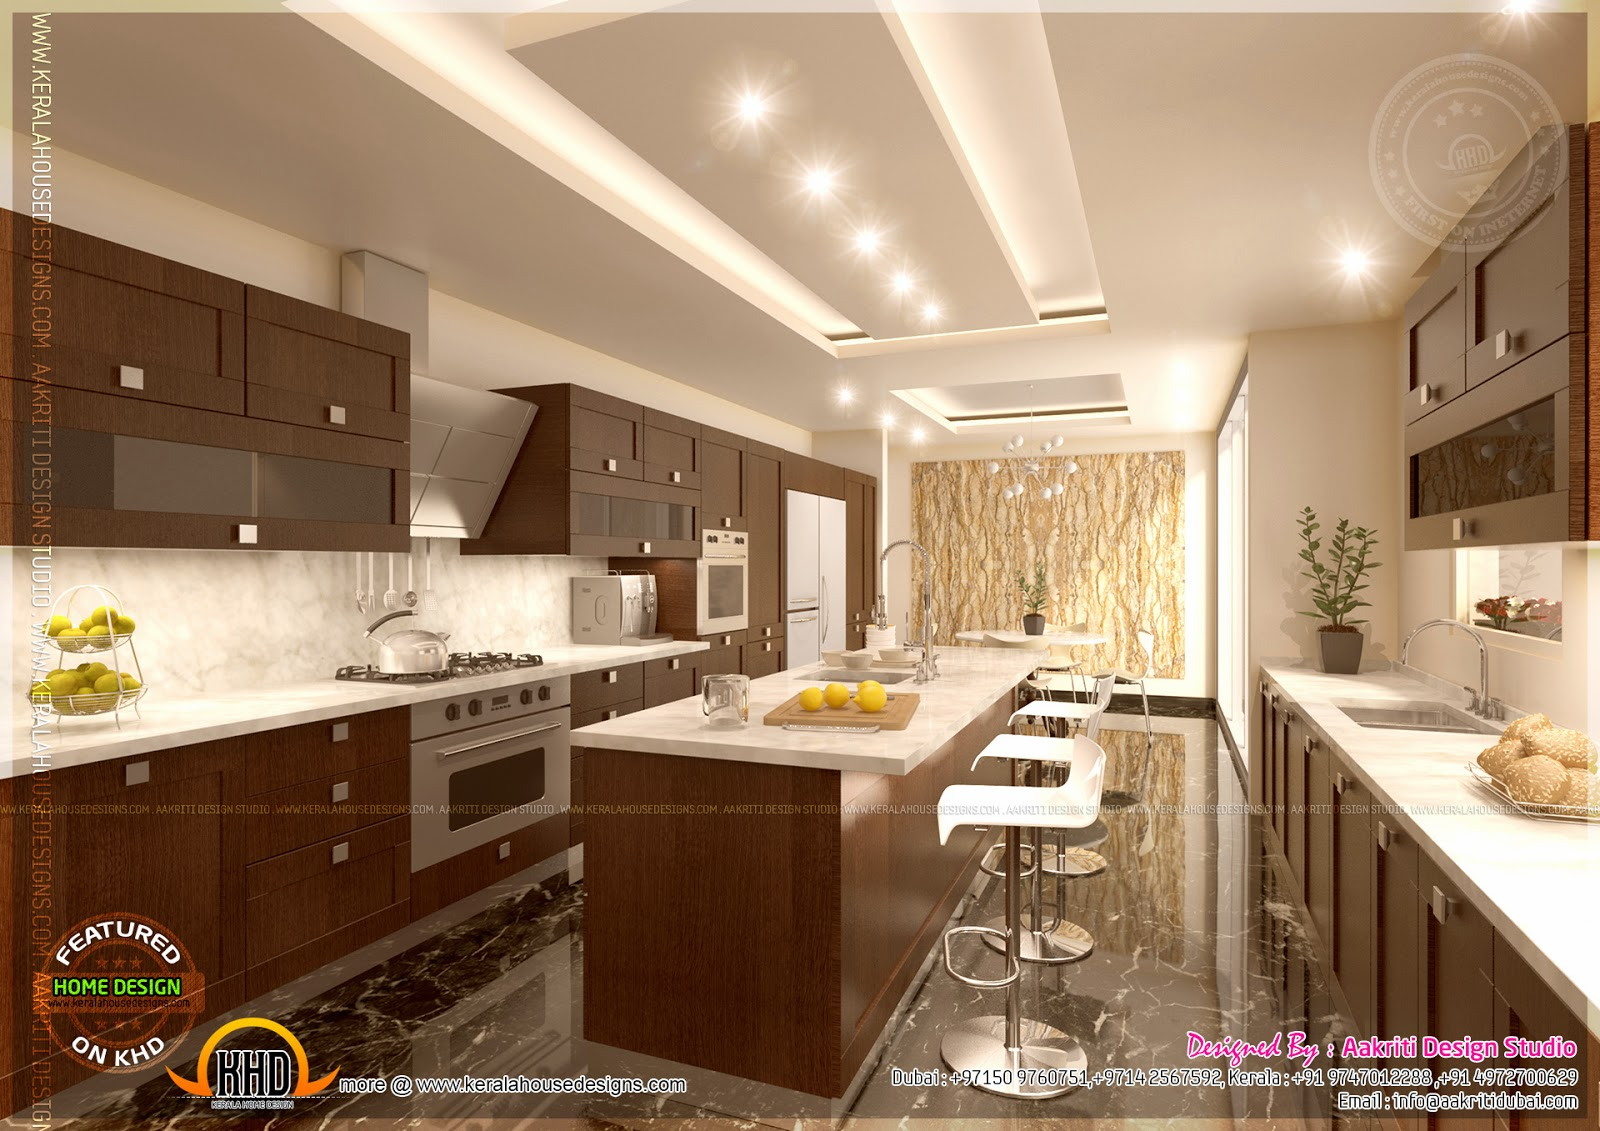 Kitchen designs by aakriti design studio kerala home for Kitchen and home design